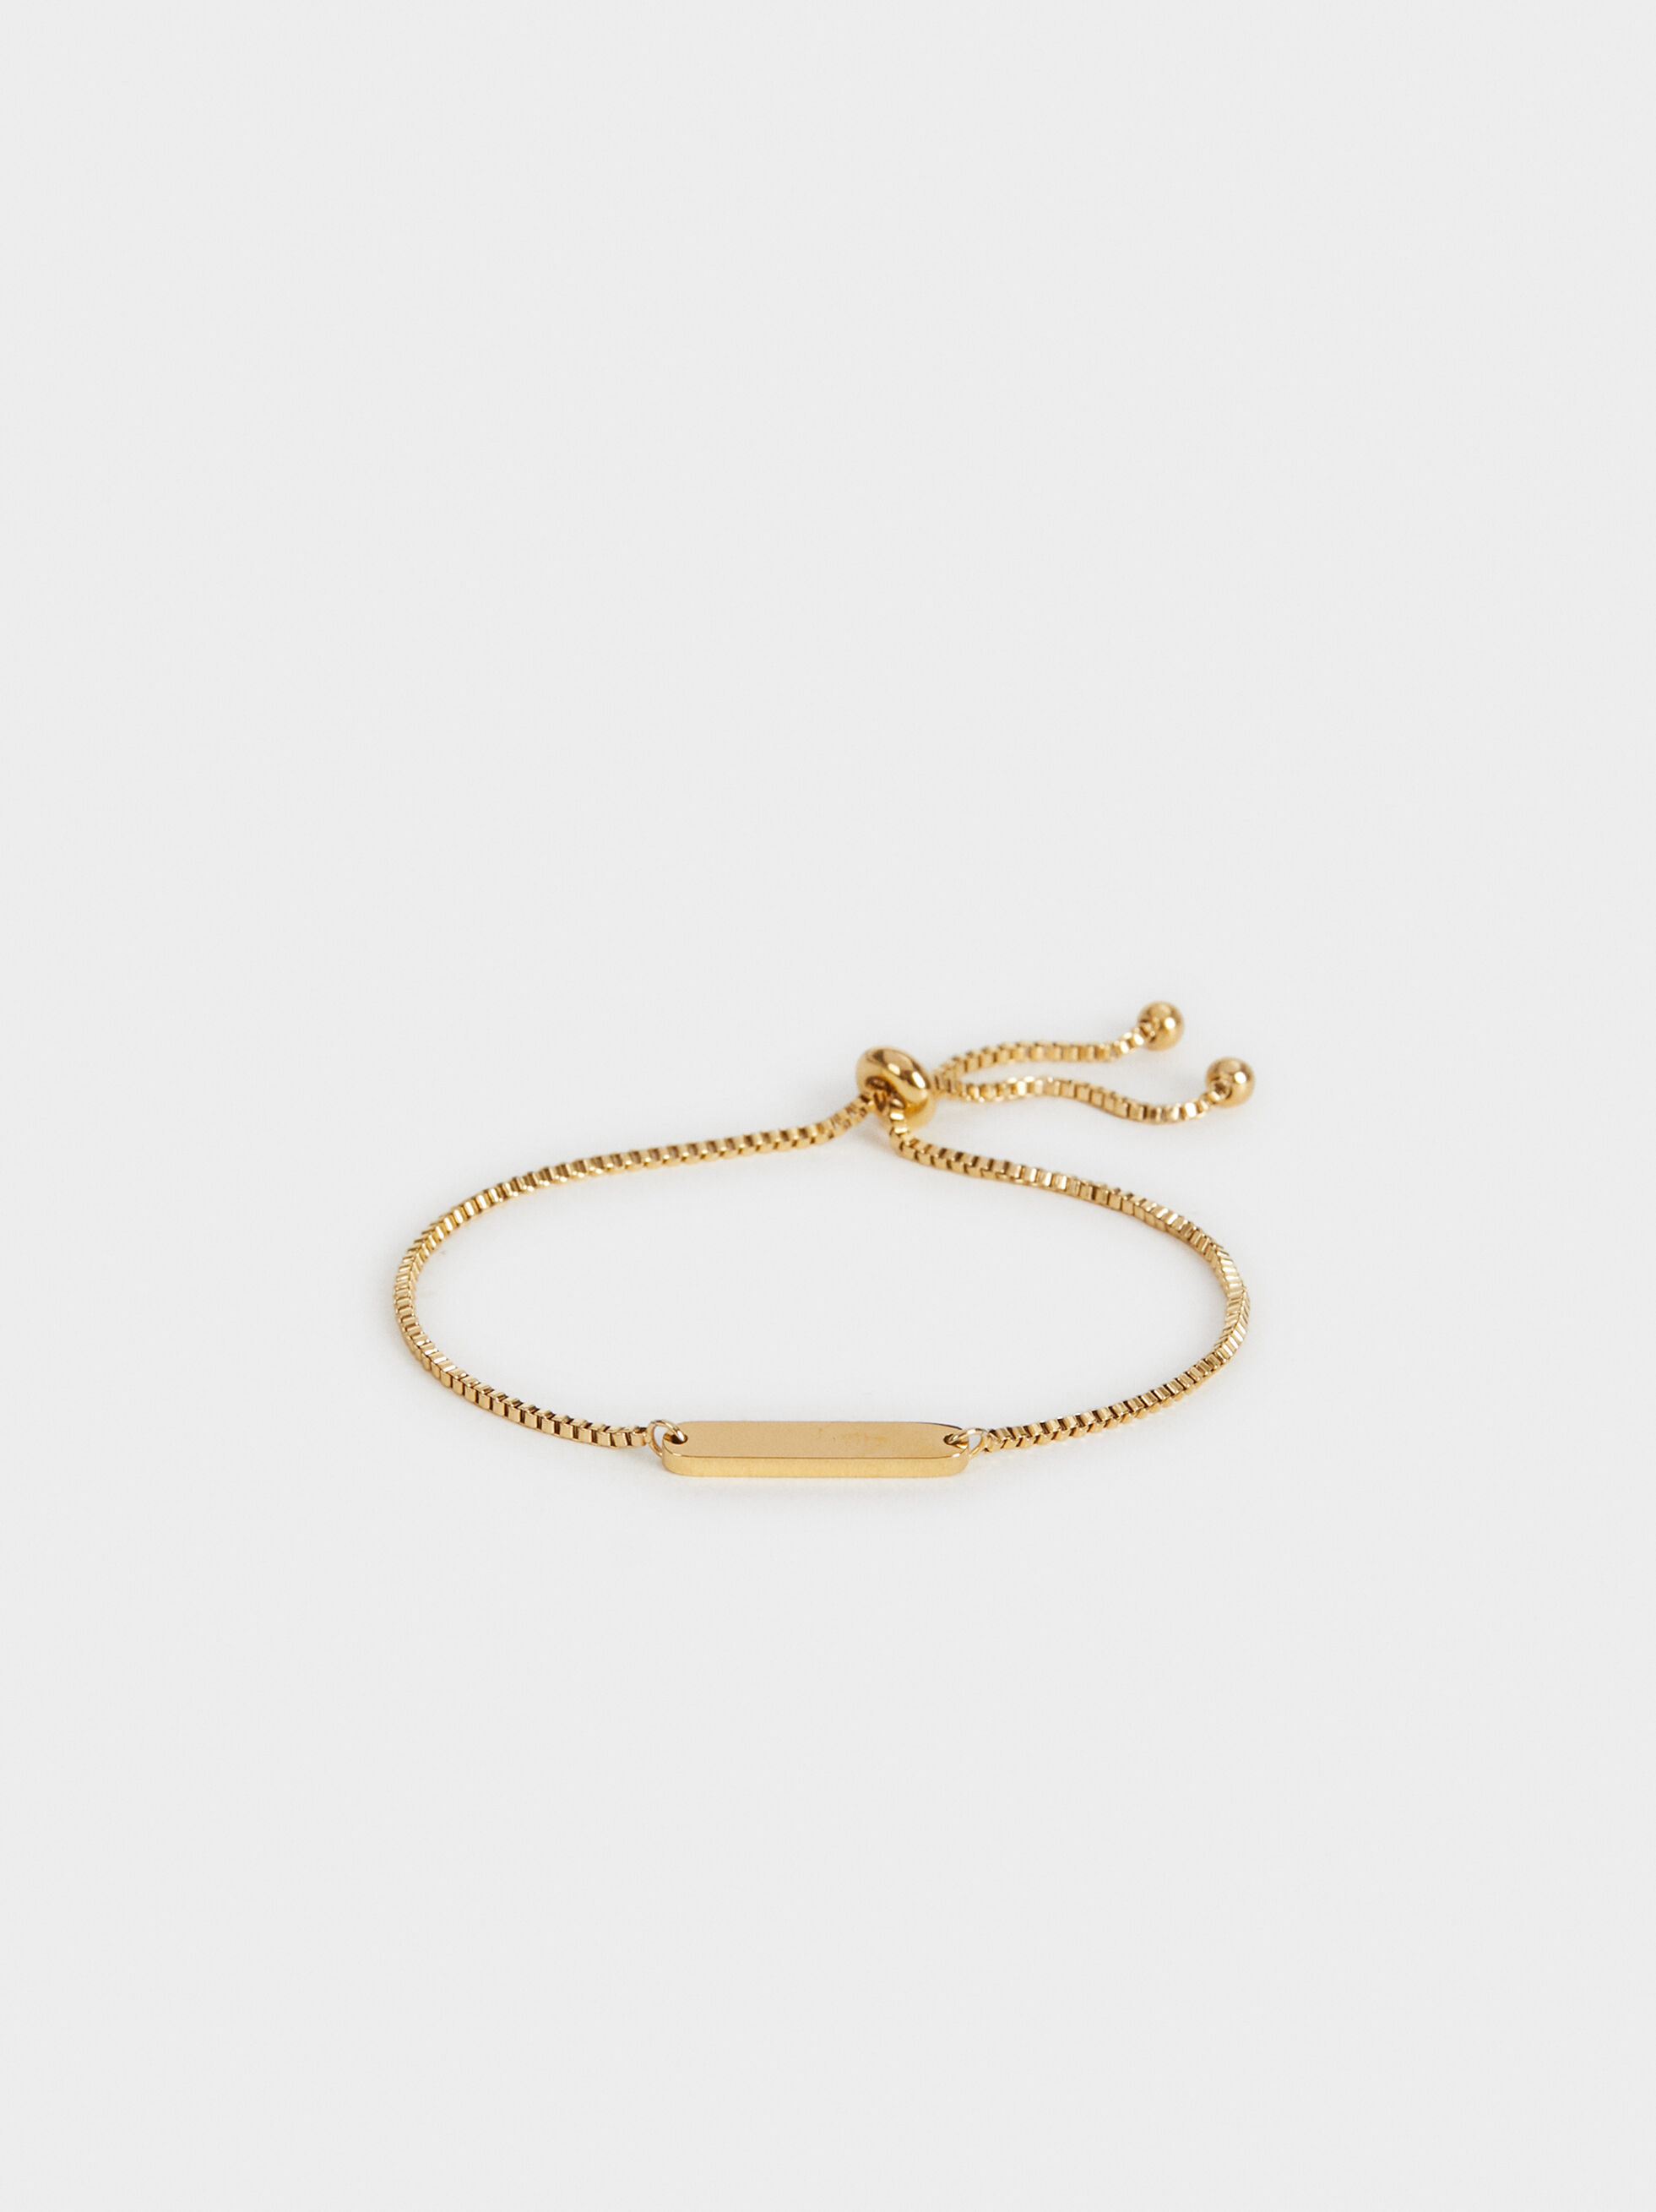 Adjustable Steel Bracelet, Golden, hi-res